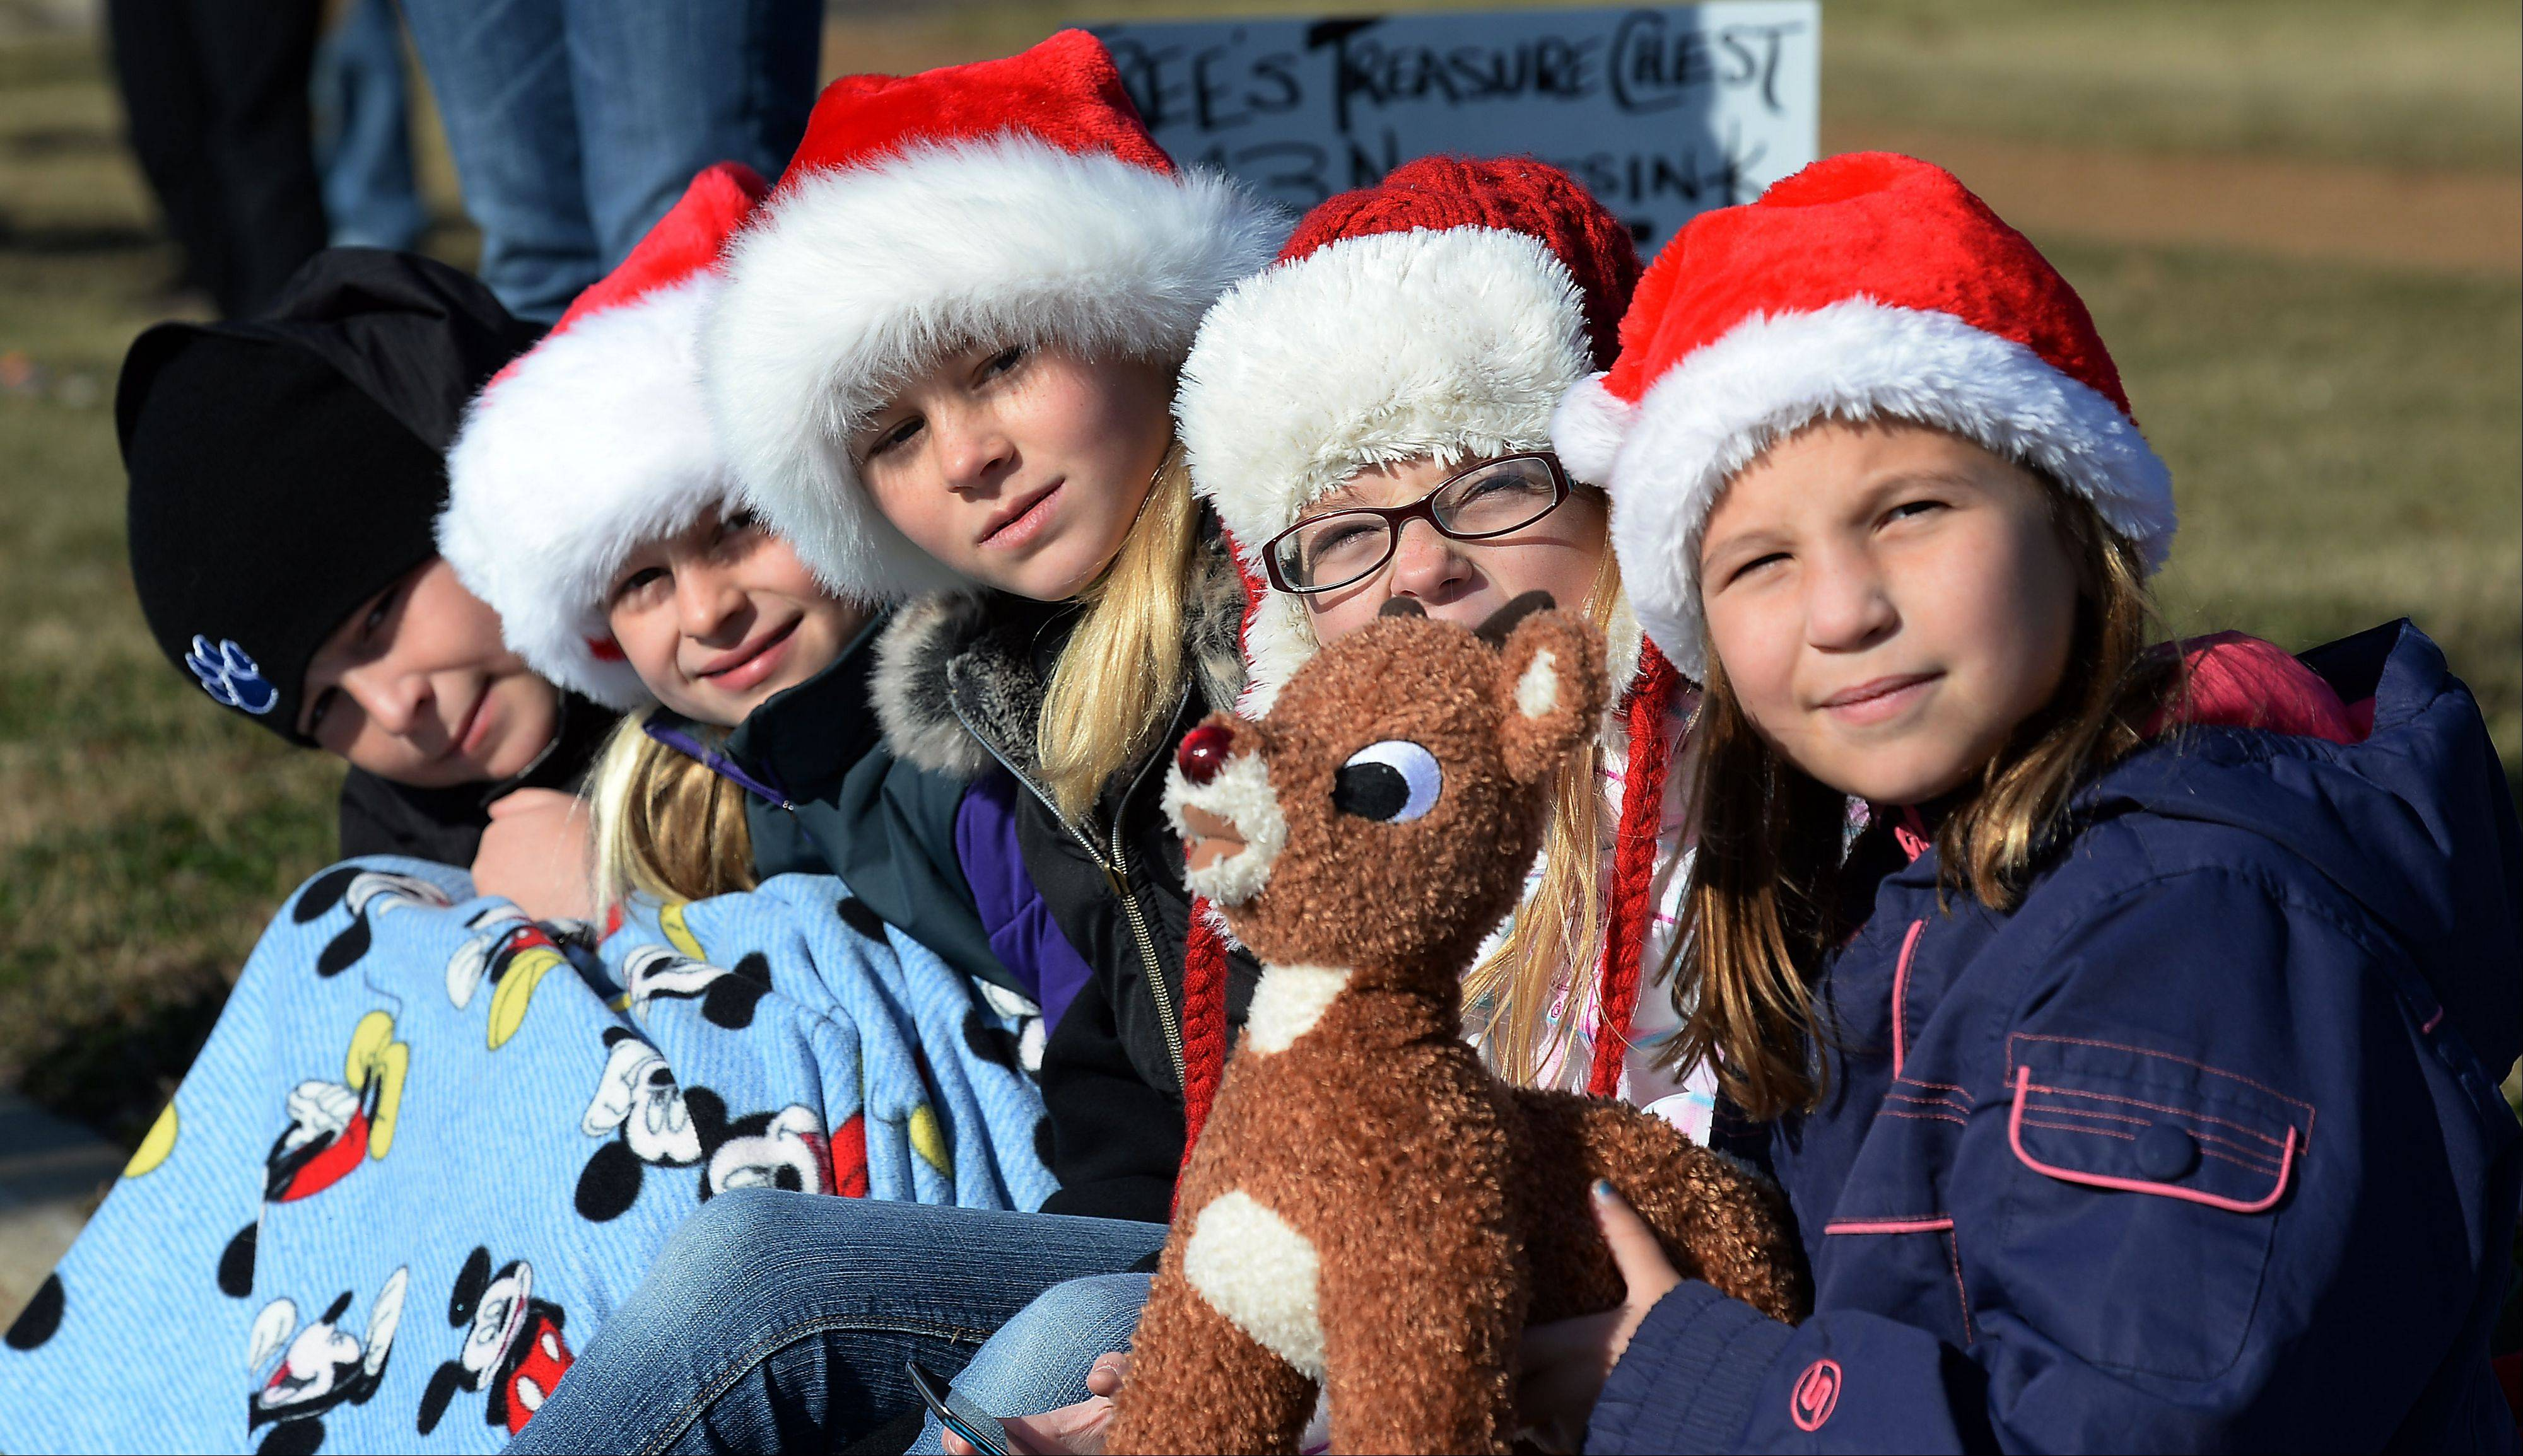 The village of Fox Lake and Korpan's Landing 57th annual Holiday Parade kicks off with Braidy Beagle, 10, Ali Beagle, 8, Peyton Bannon, 11, Annie Willis, 10, and Katie Beagle, 8, all of Spring Grove watching for the star of the show, Santa, to show up on Saturday.